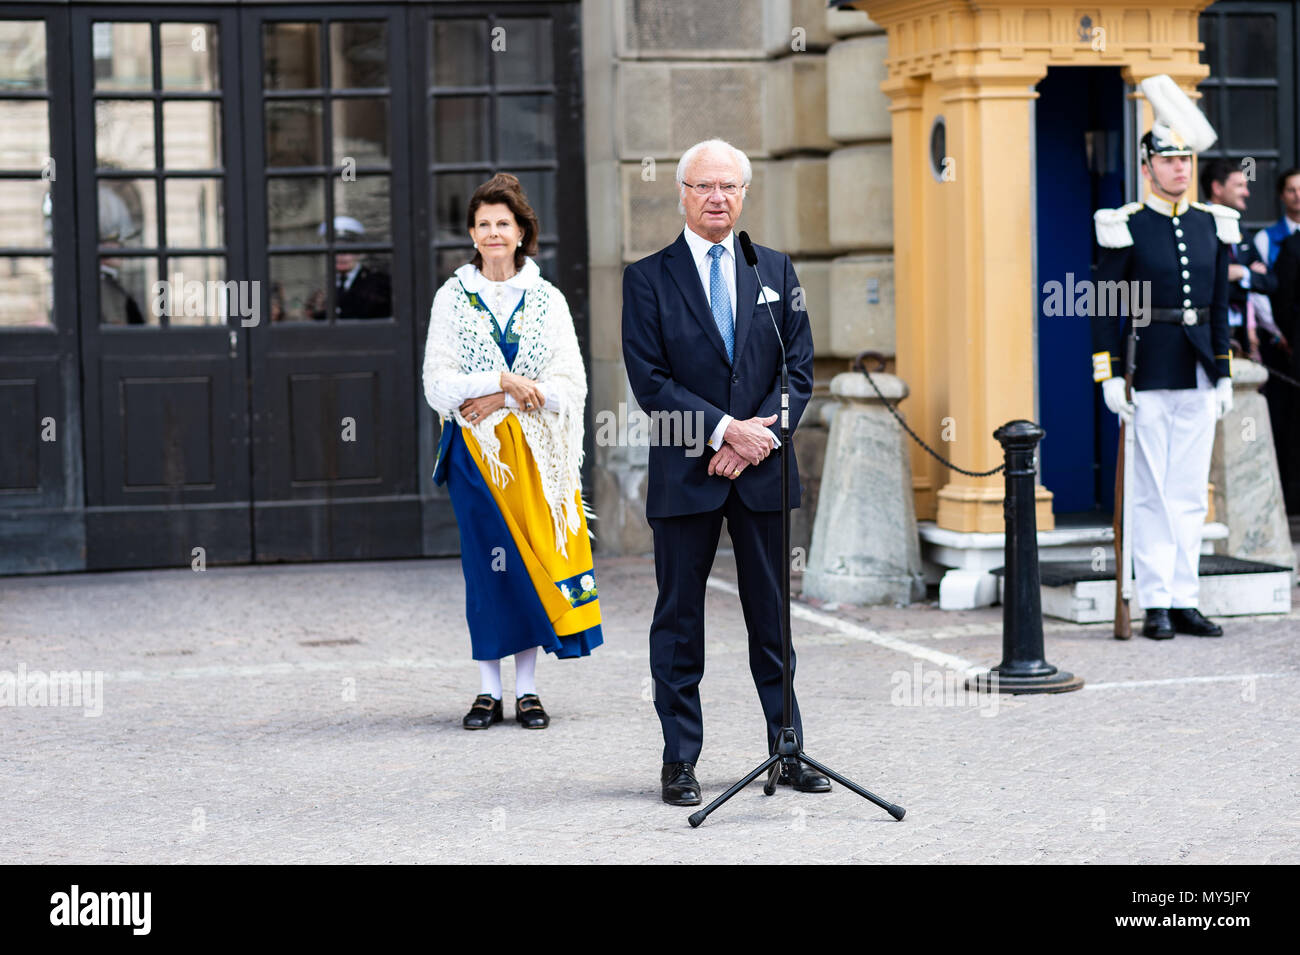 Stockholm, Sweden, June 6, 2018. Swedish National Day is celebrated at the Royal Palace with 'Open Castle' - a full day of free entrance to the Castle's museums, exhibitions and activities. The royal couple, King Carl XVI Gustaf and Queen Silvia, opens the western gate of the castle from the outer courtyard. Credit: Barbro Bergfeldt/Alamy Live NewsStock Photo